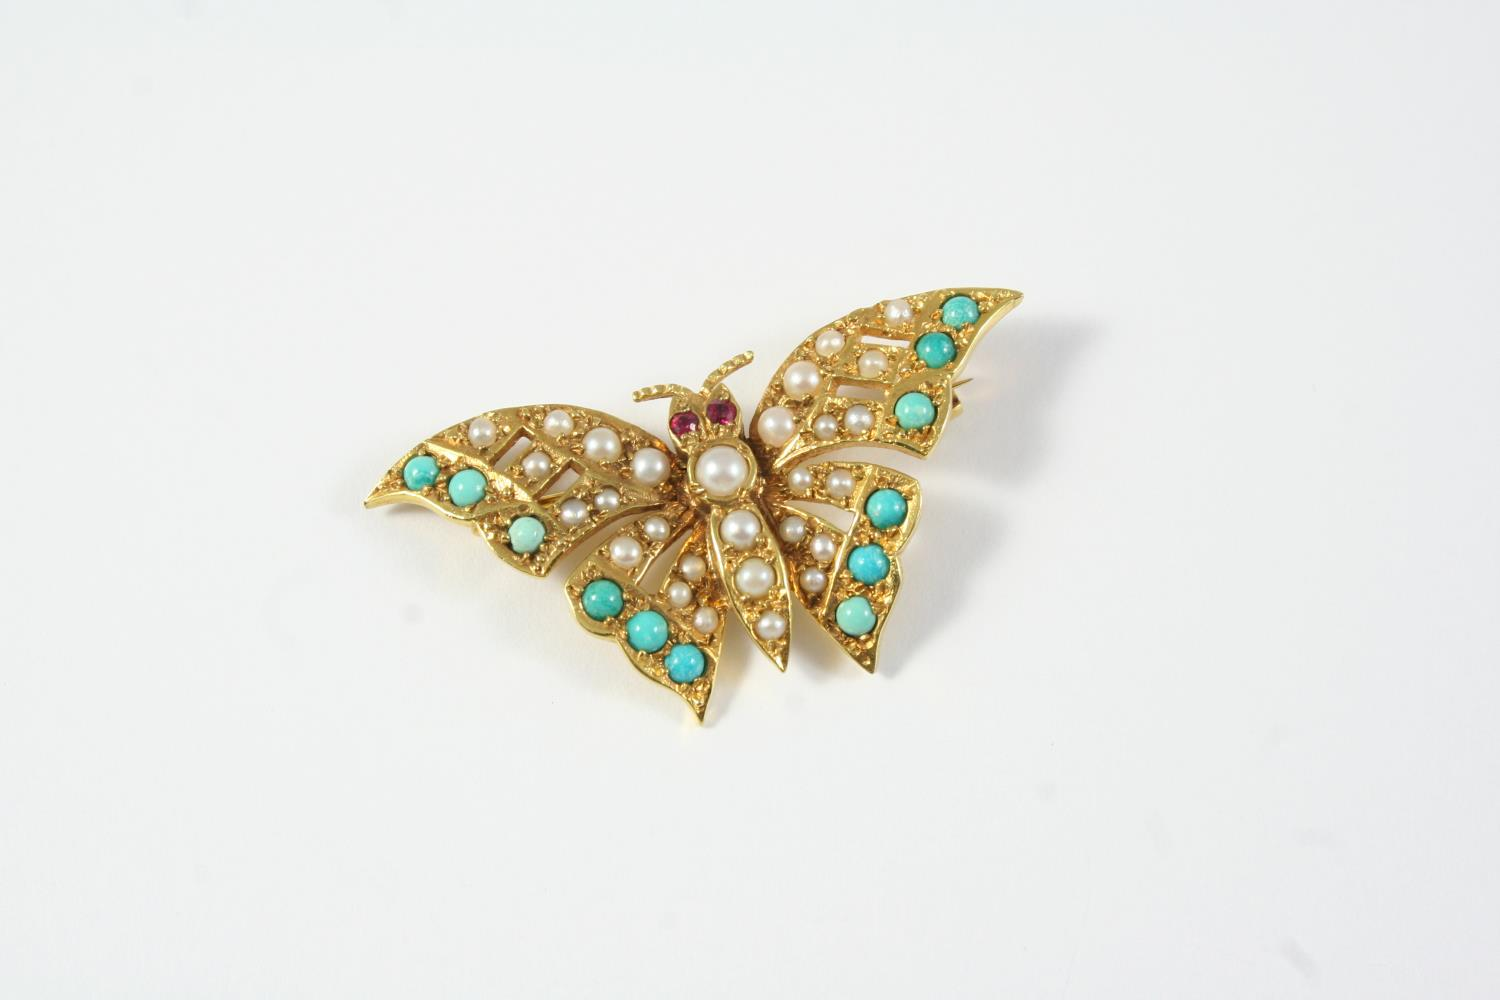 A TURQUOISE AND PEARL BUTTERFLY BROOCH formed with four graduated half pearls to the body, with